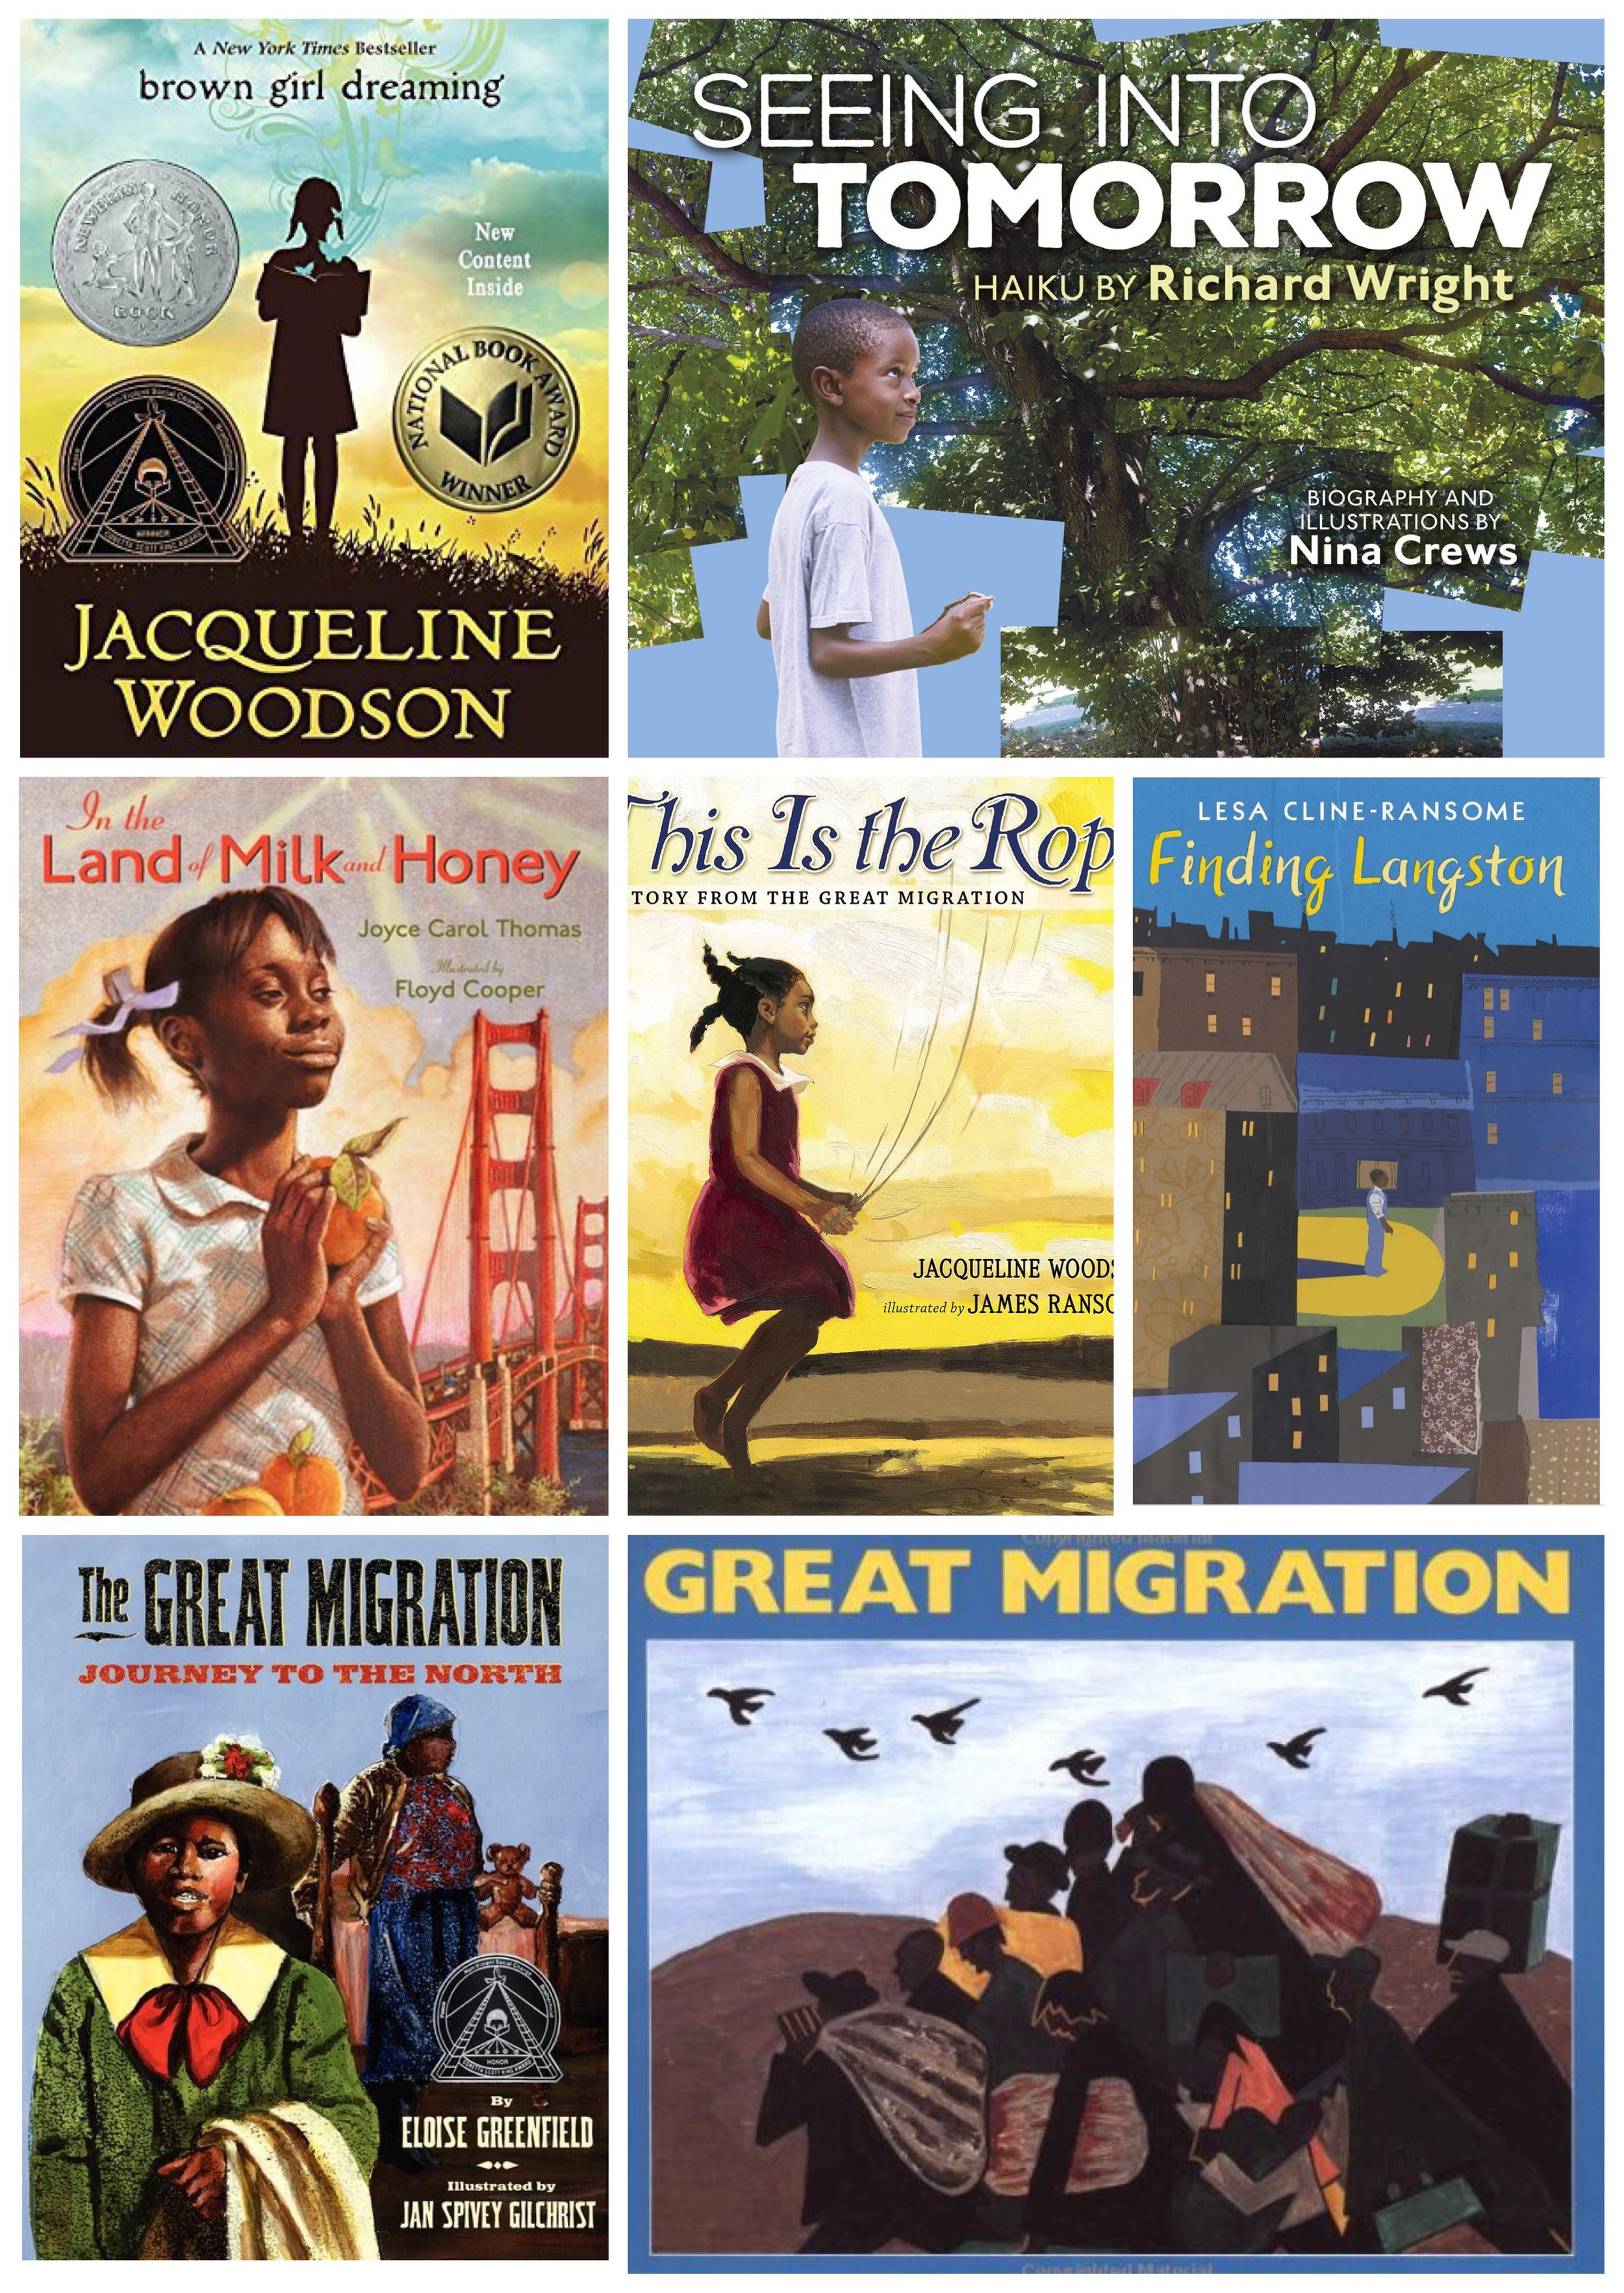 For the kids… - books on the great migration